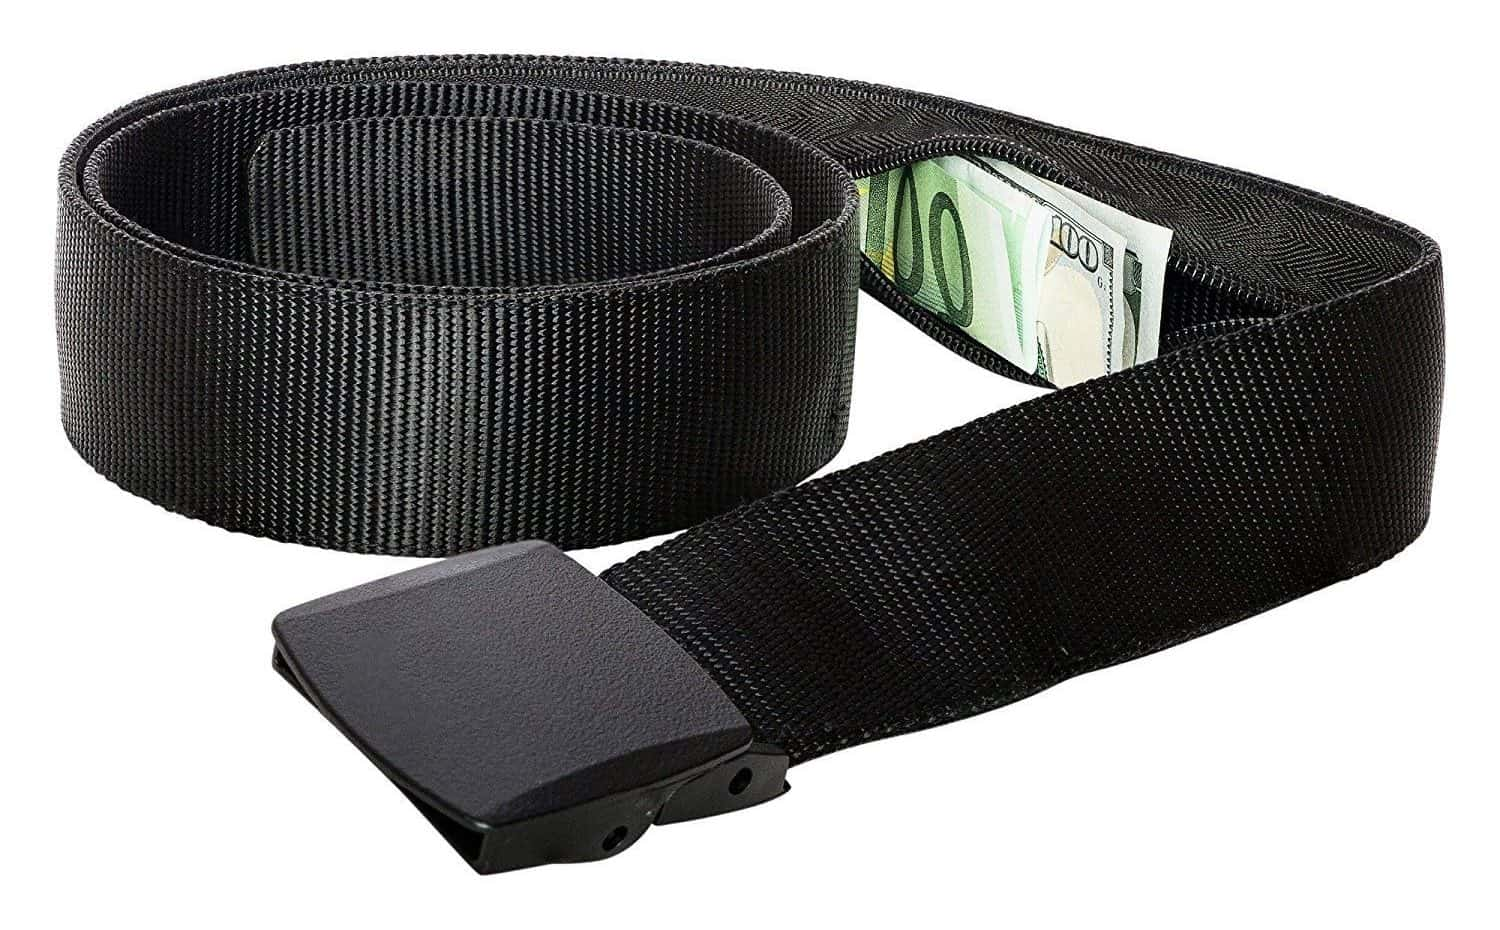 Safely store travel money in a money belt